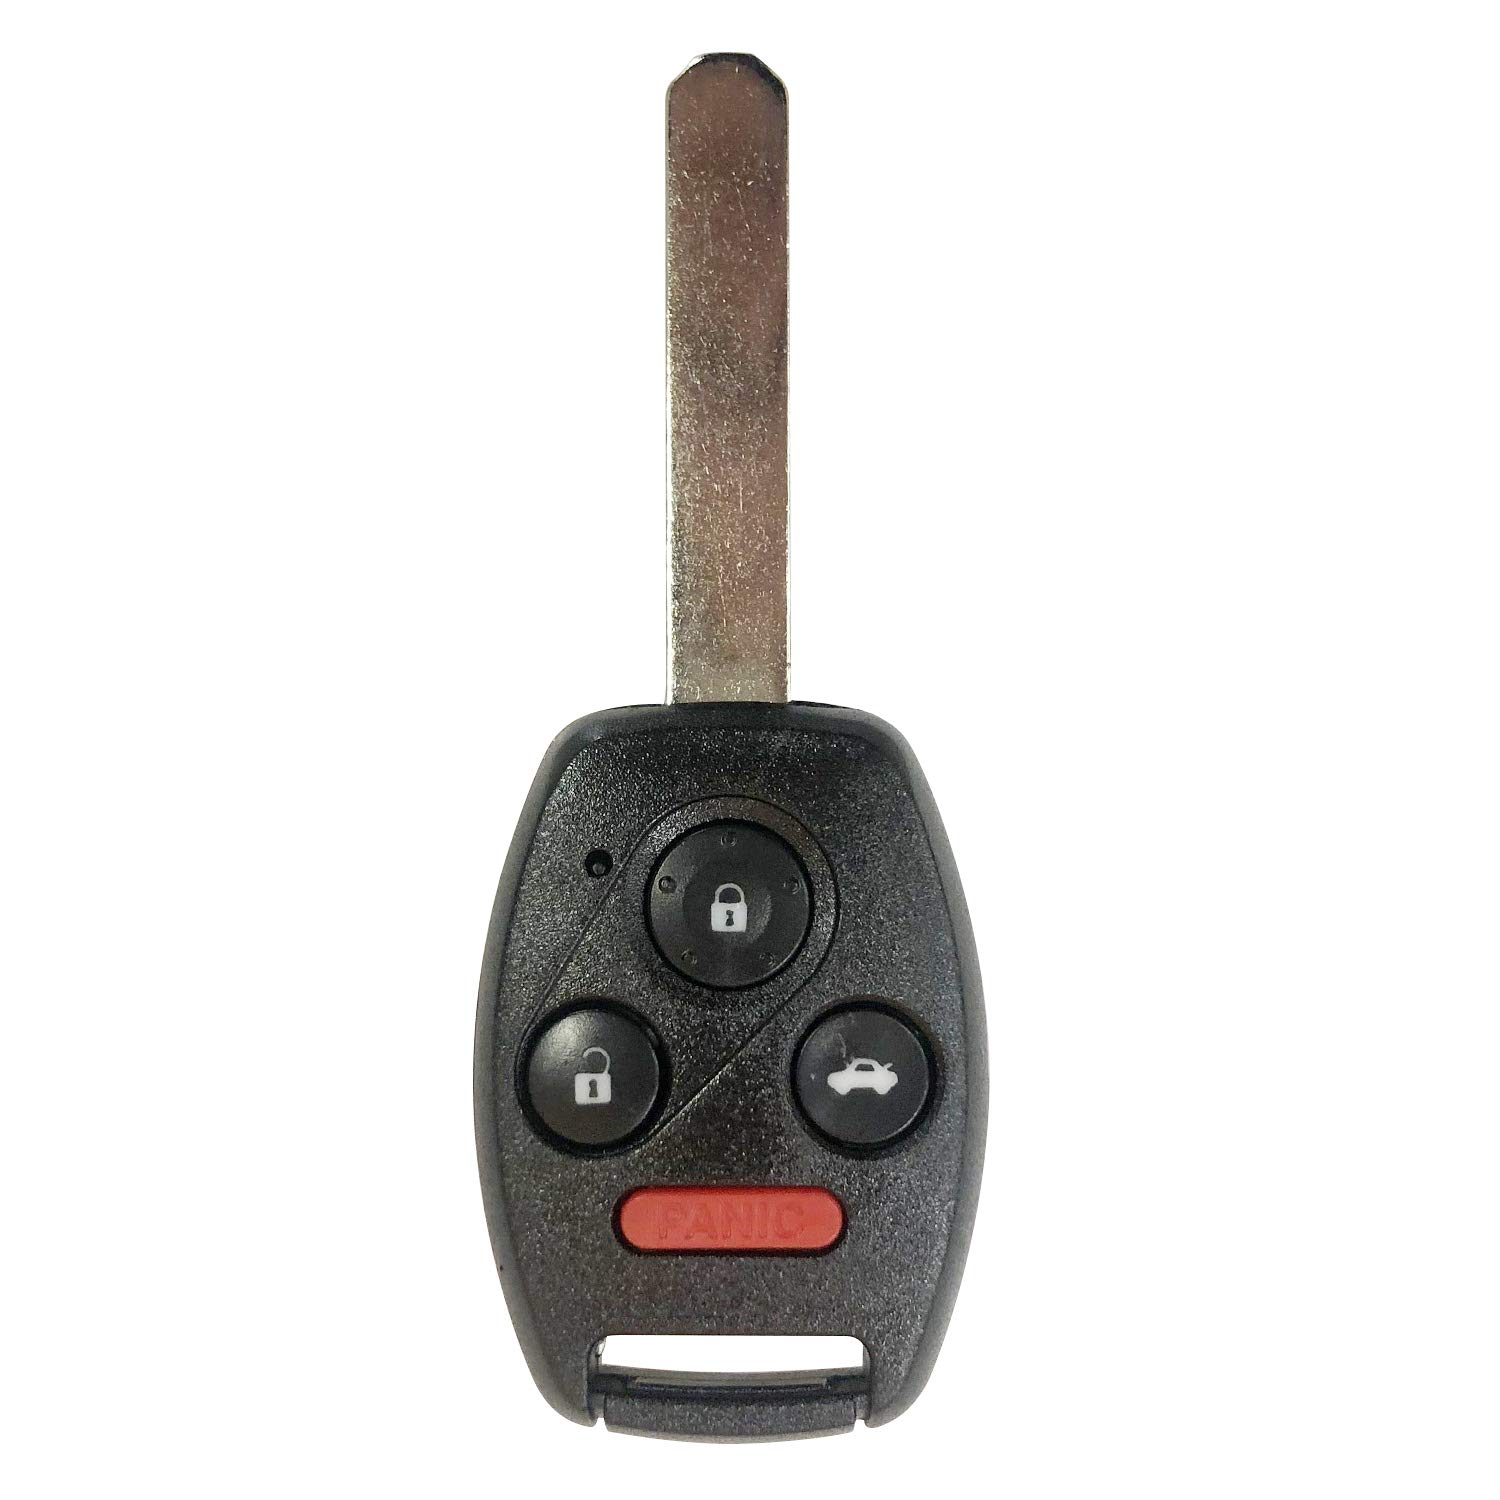 PAIR Replacement For 2006 2007 2008 2009 2010 2011 Honda Civic EX Si Keyless Entry Key Remote 4 BUTTON Fccid N5F-S0084A,by AUTOKEYMAX